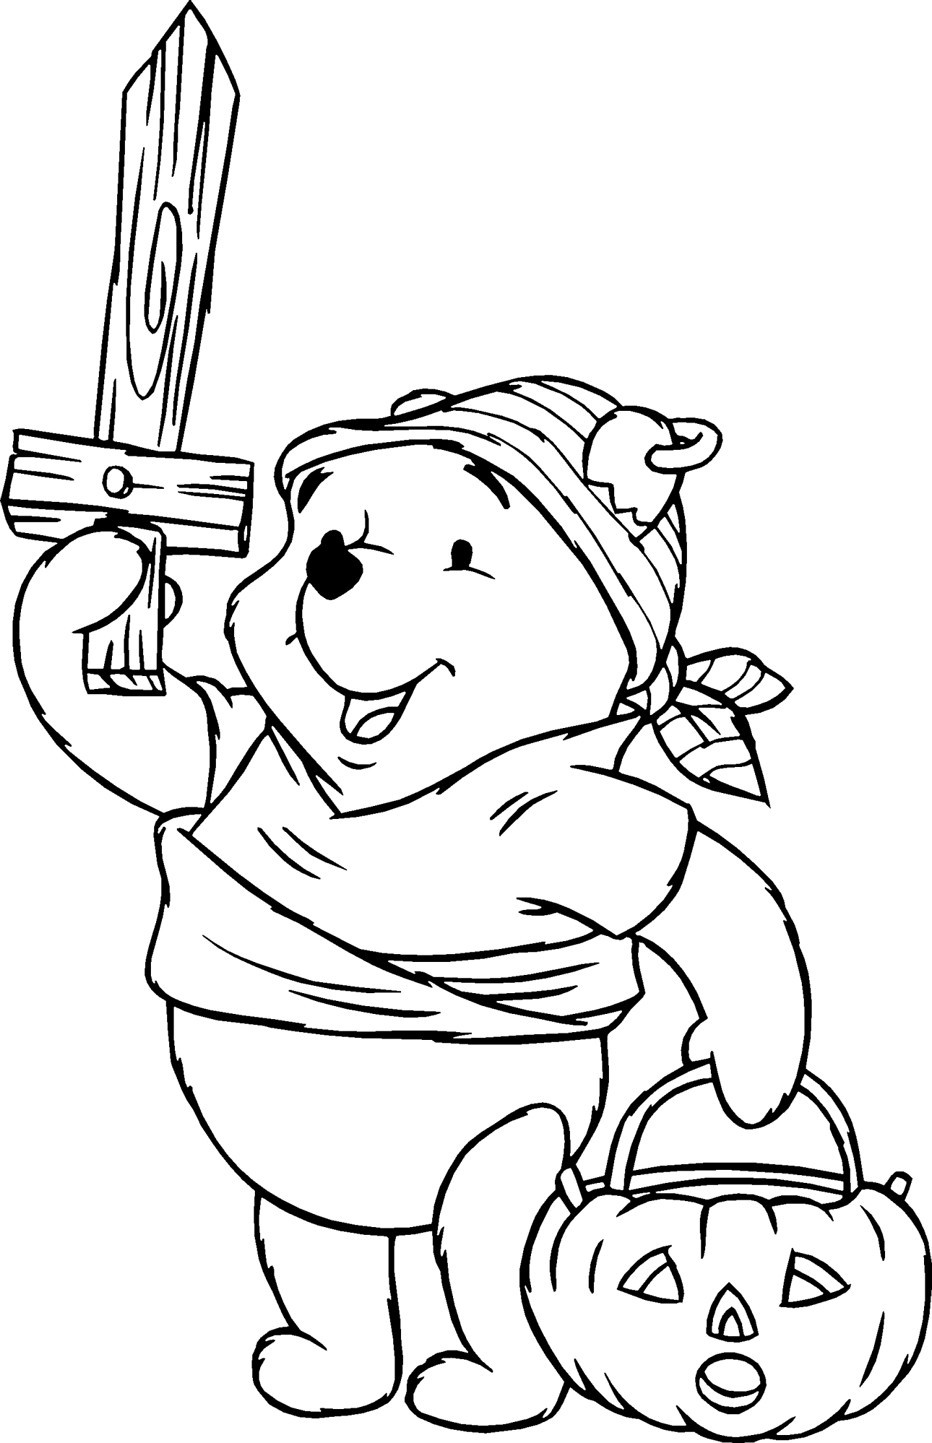 Best ideas about Cool Coloring Pages For Kids Free . Save or Pin 24 Free Printable Halloween Coloring Pages for Kids Now.